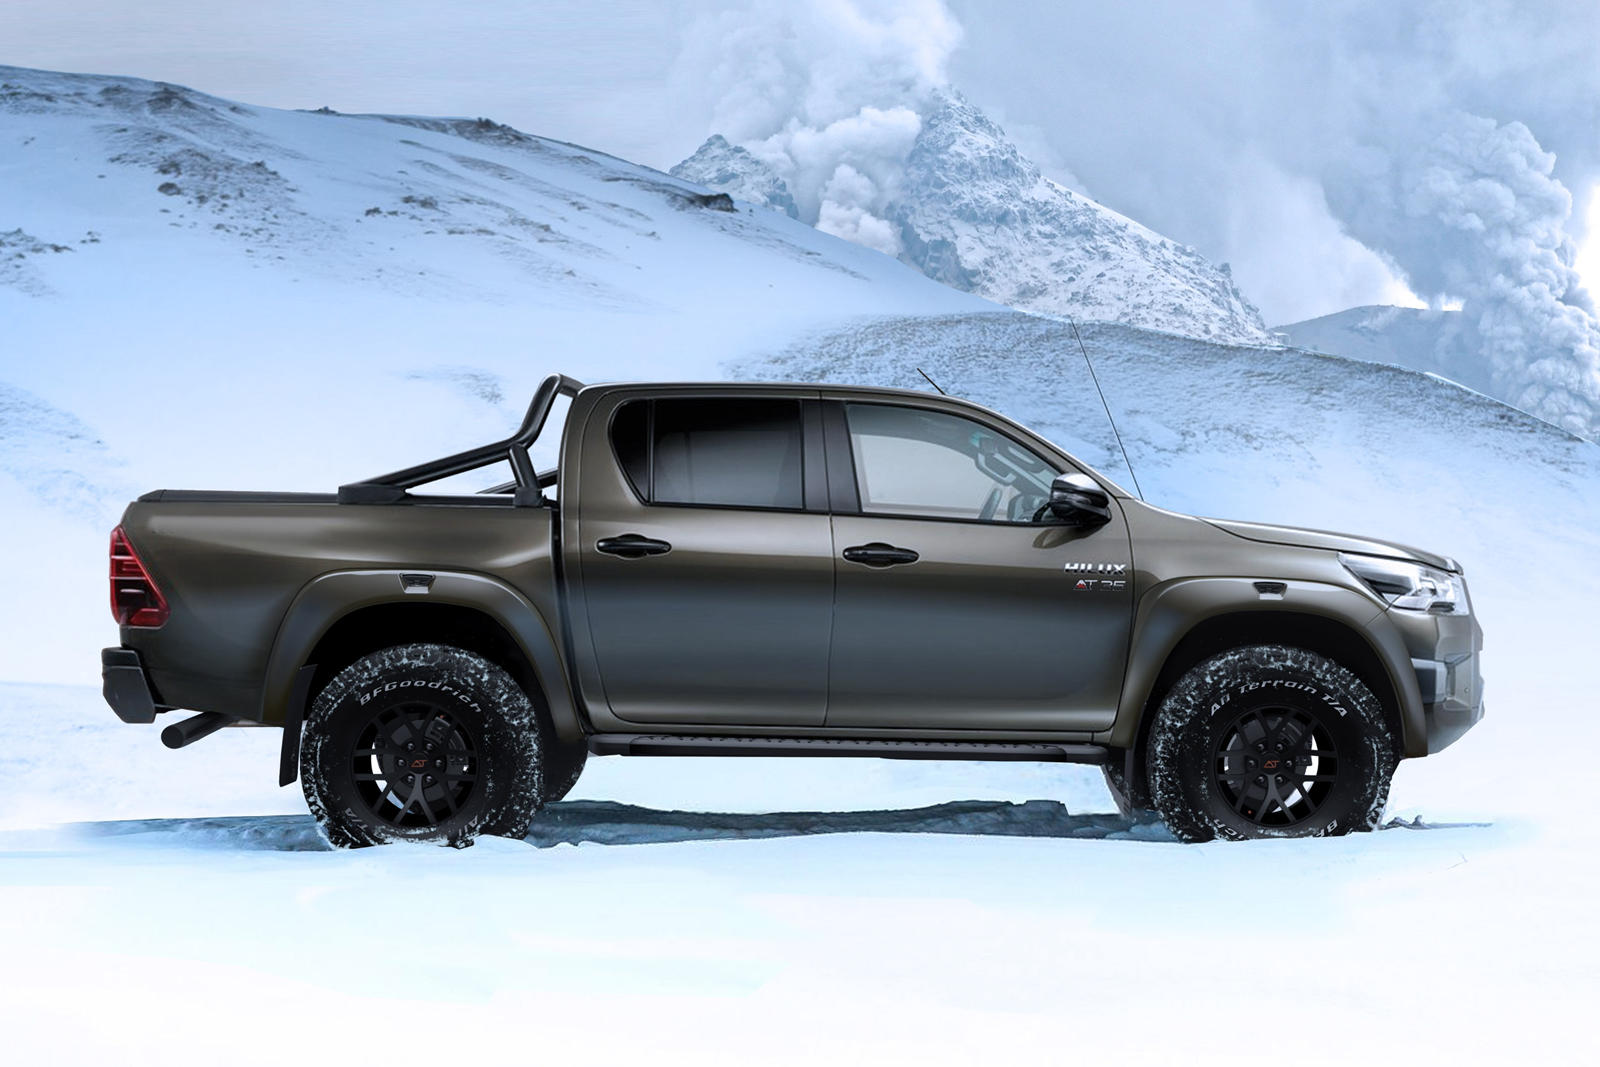 Thân xe Toyota Hilux Arctic Truck AT35